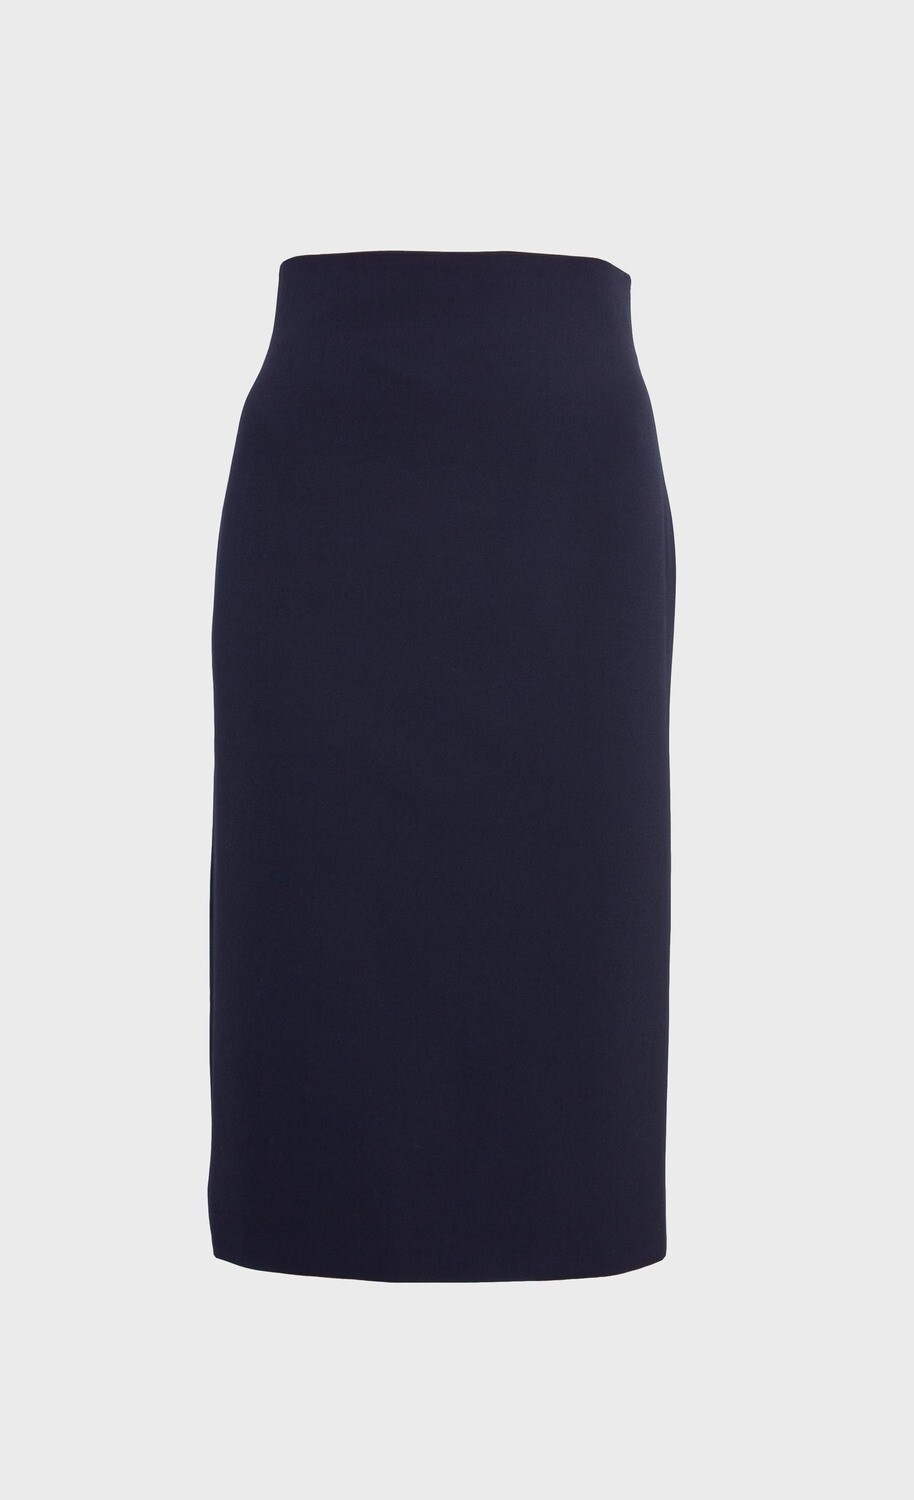 HIGH-WAISTED PENCIL SKIRT MIDI IN BLACK